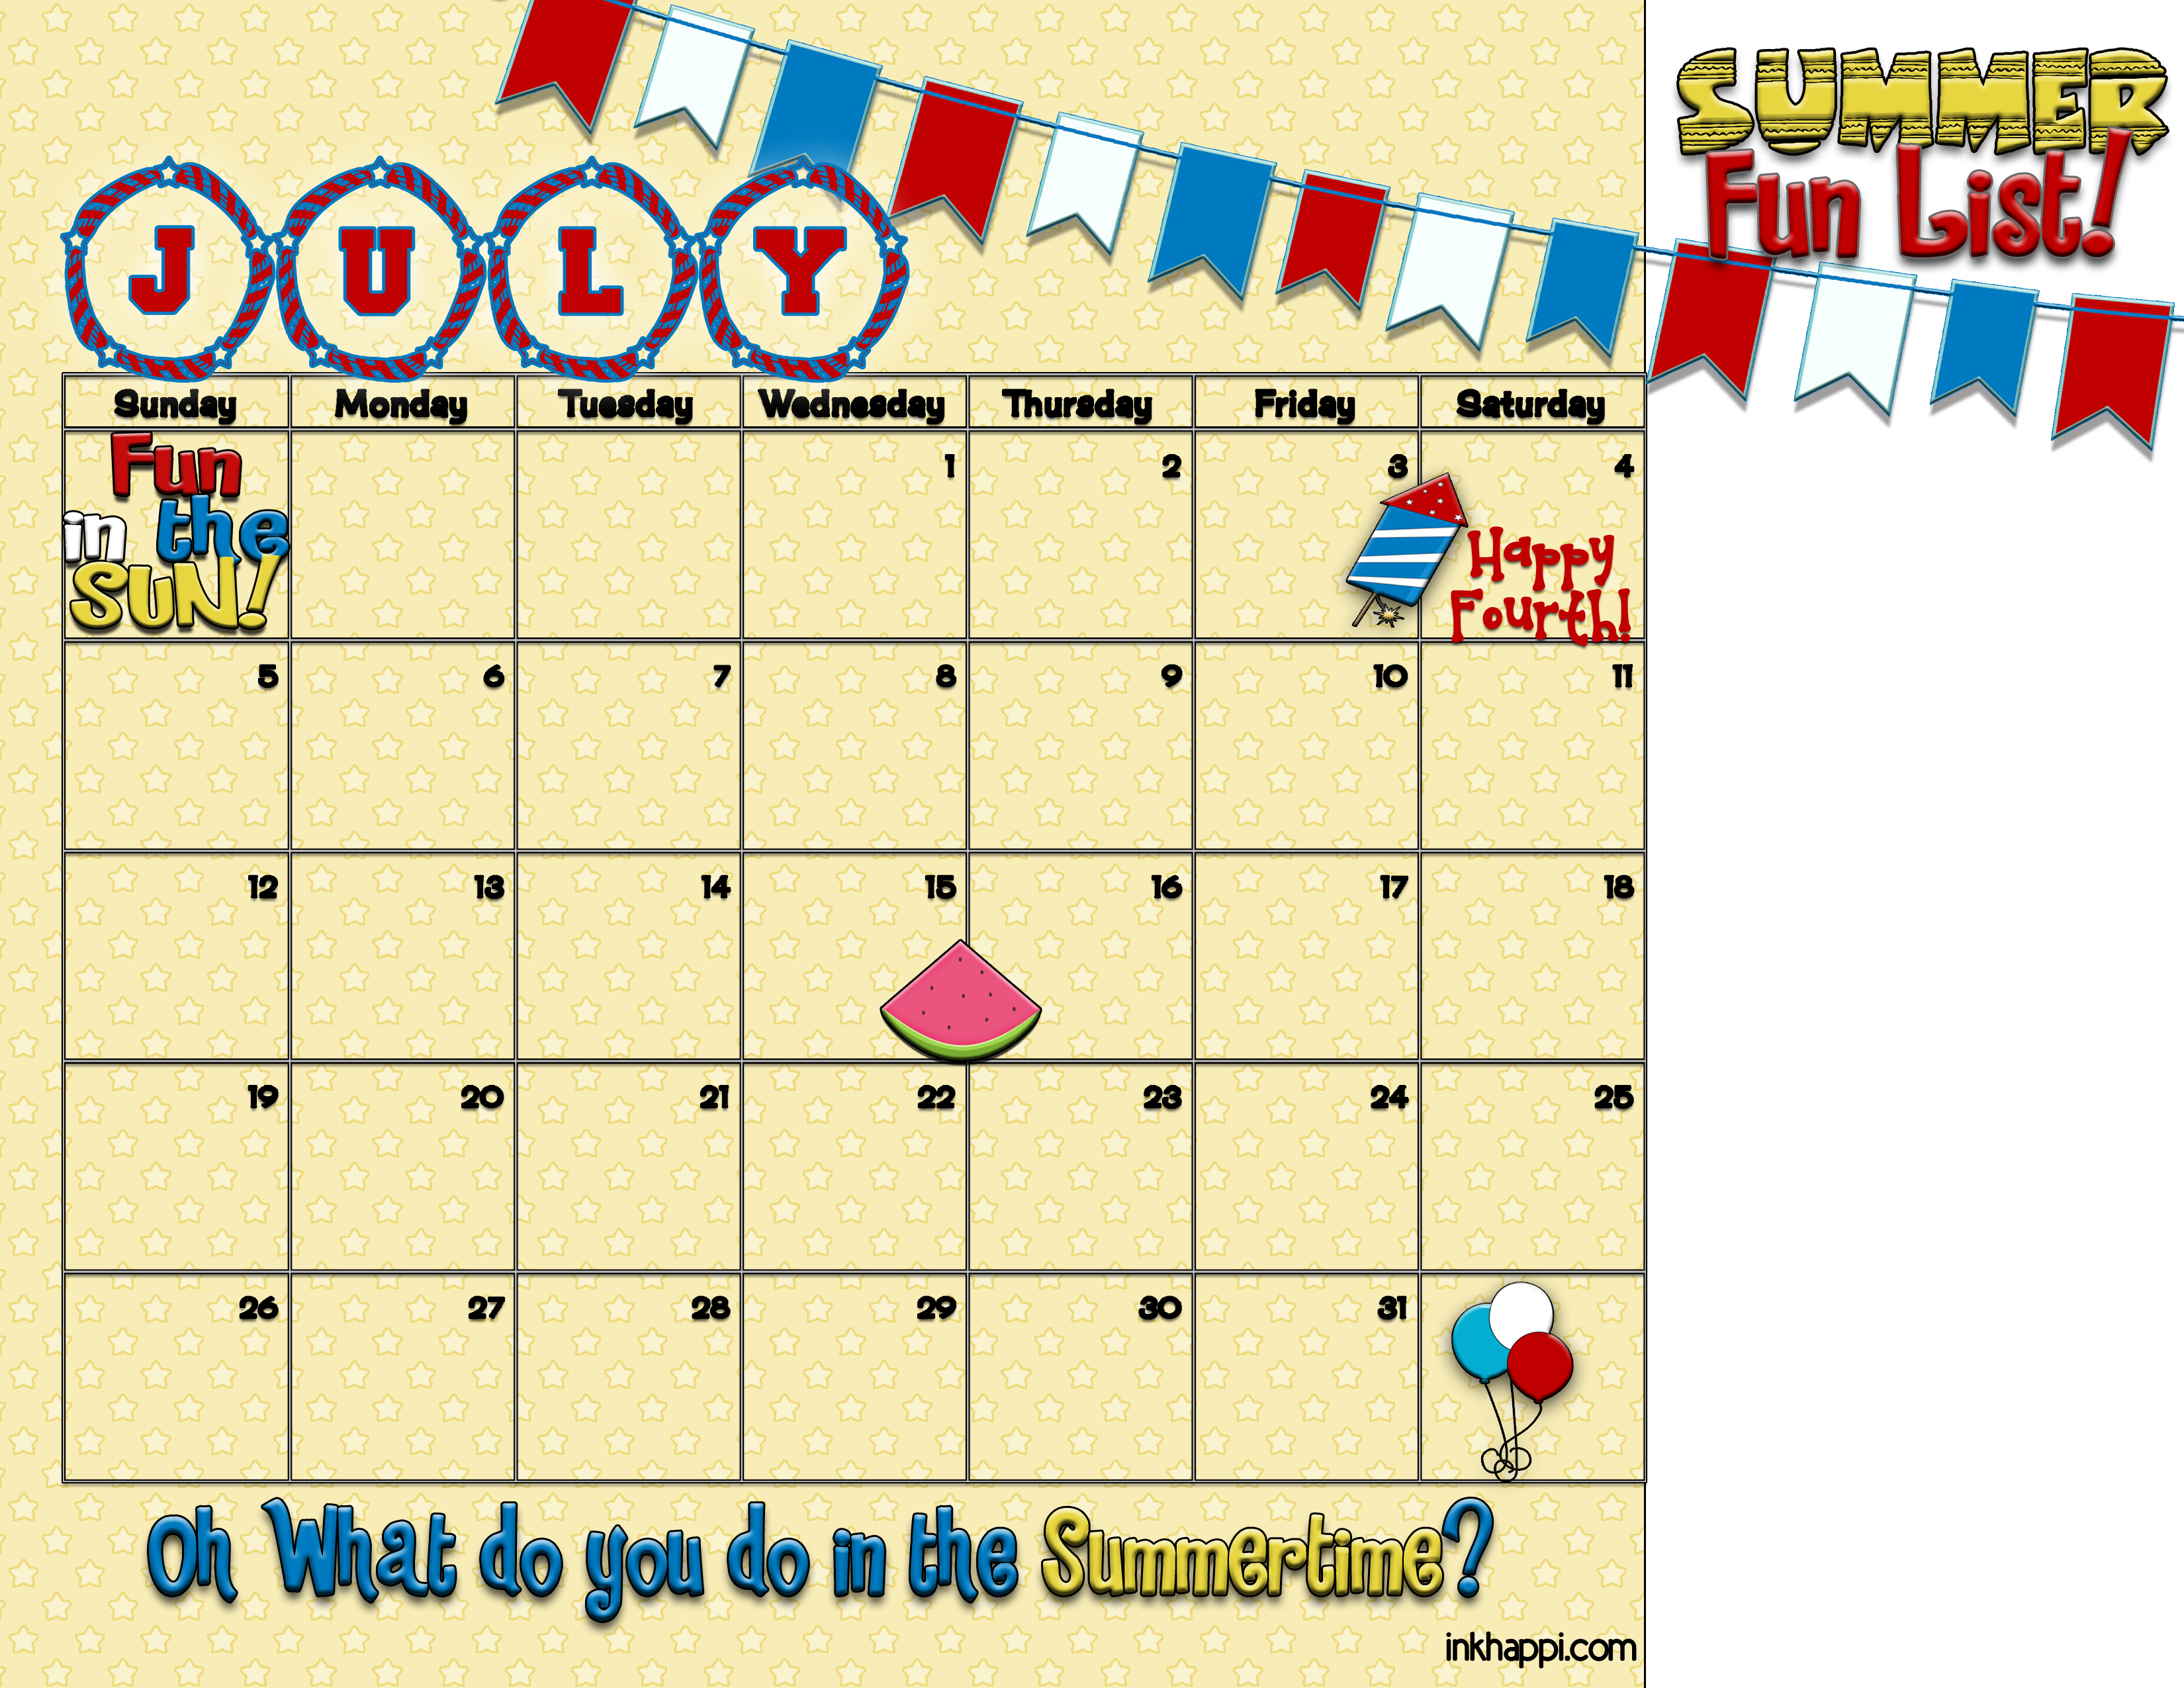 Calendar Ideas For July : Summertime activities and free planning calendars inkhappi